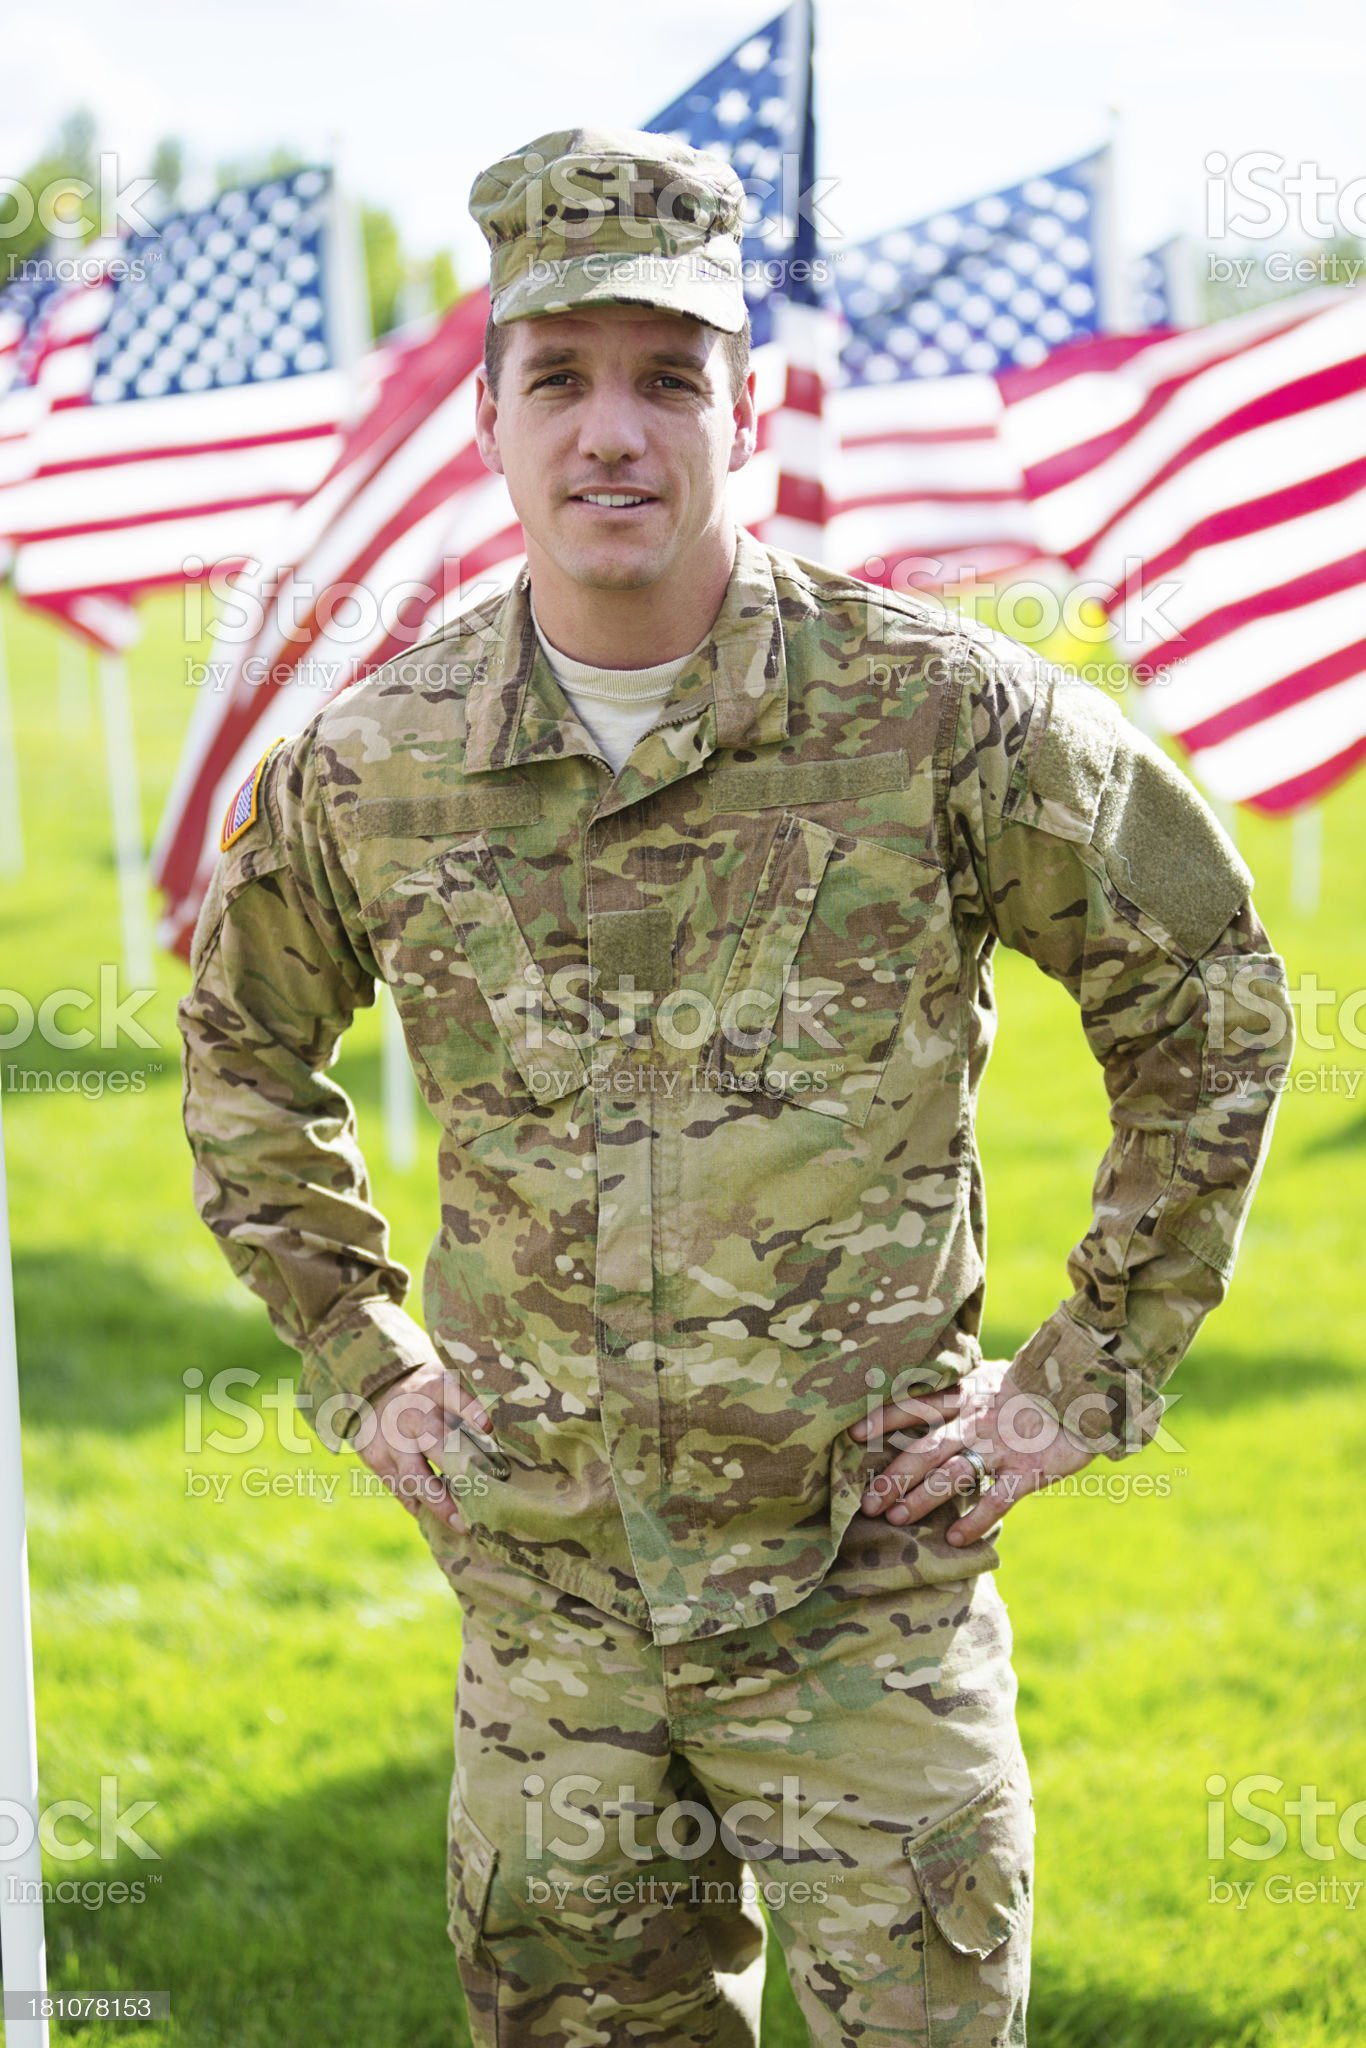 Portrait of American Soldier royalty-free stock photo